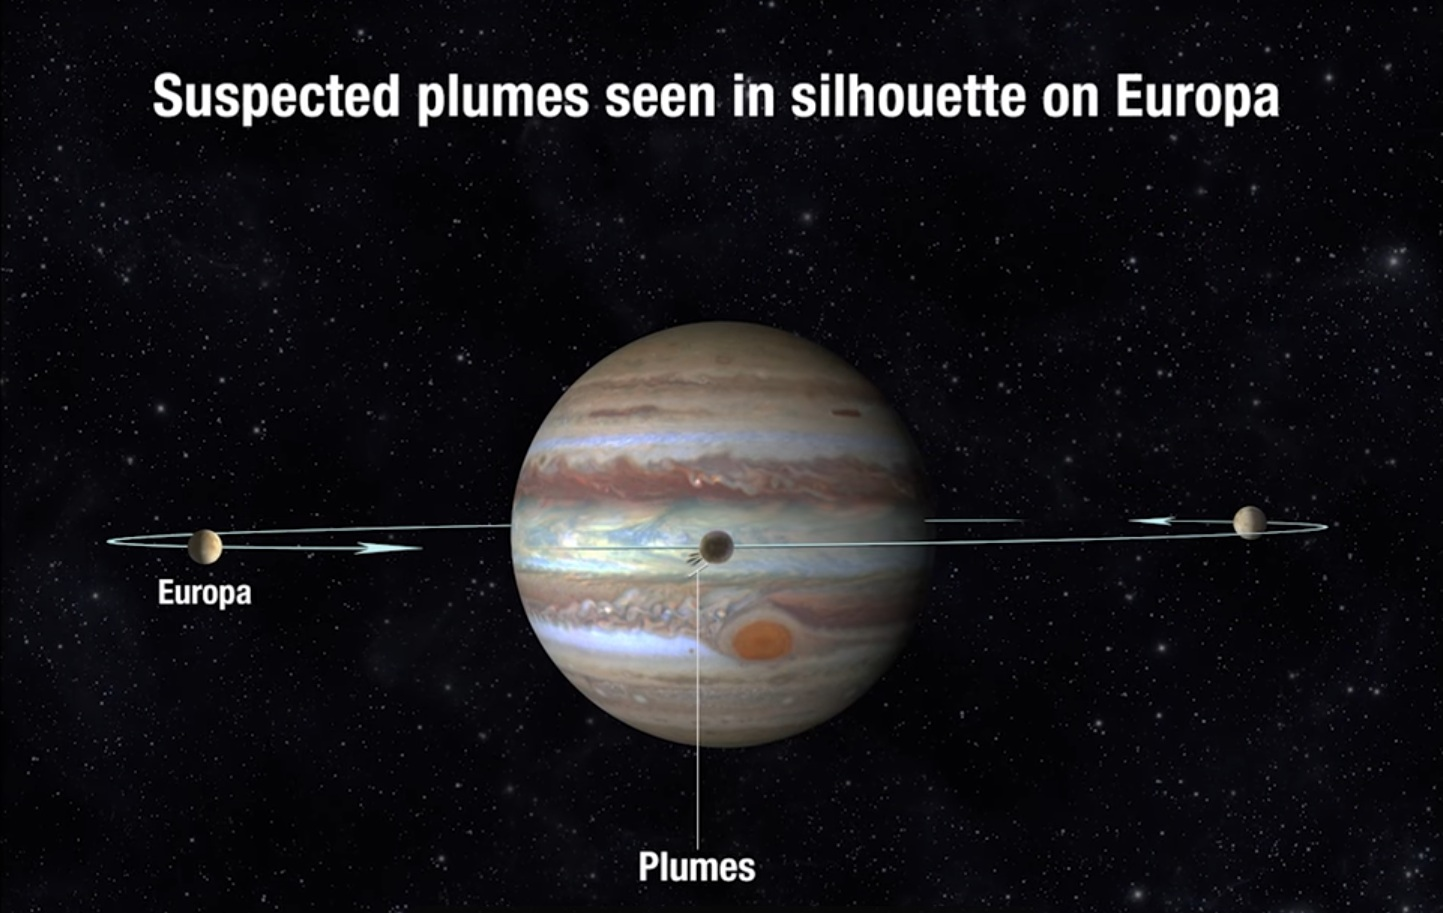 Image Courtesy: NASA/JPL-Caltech